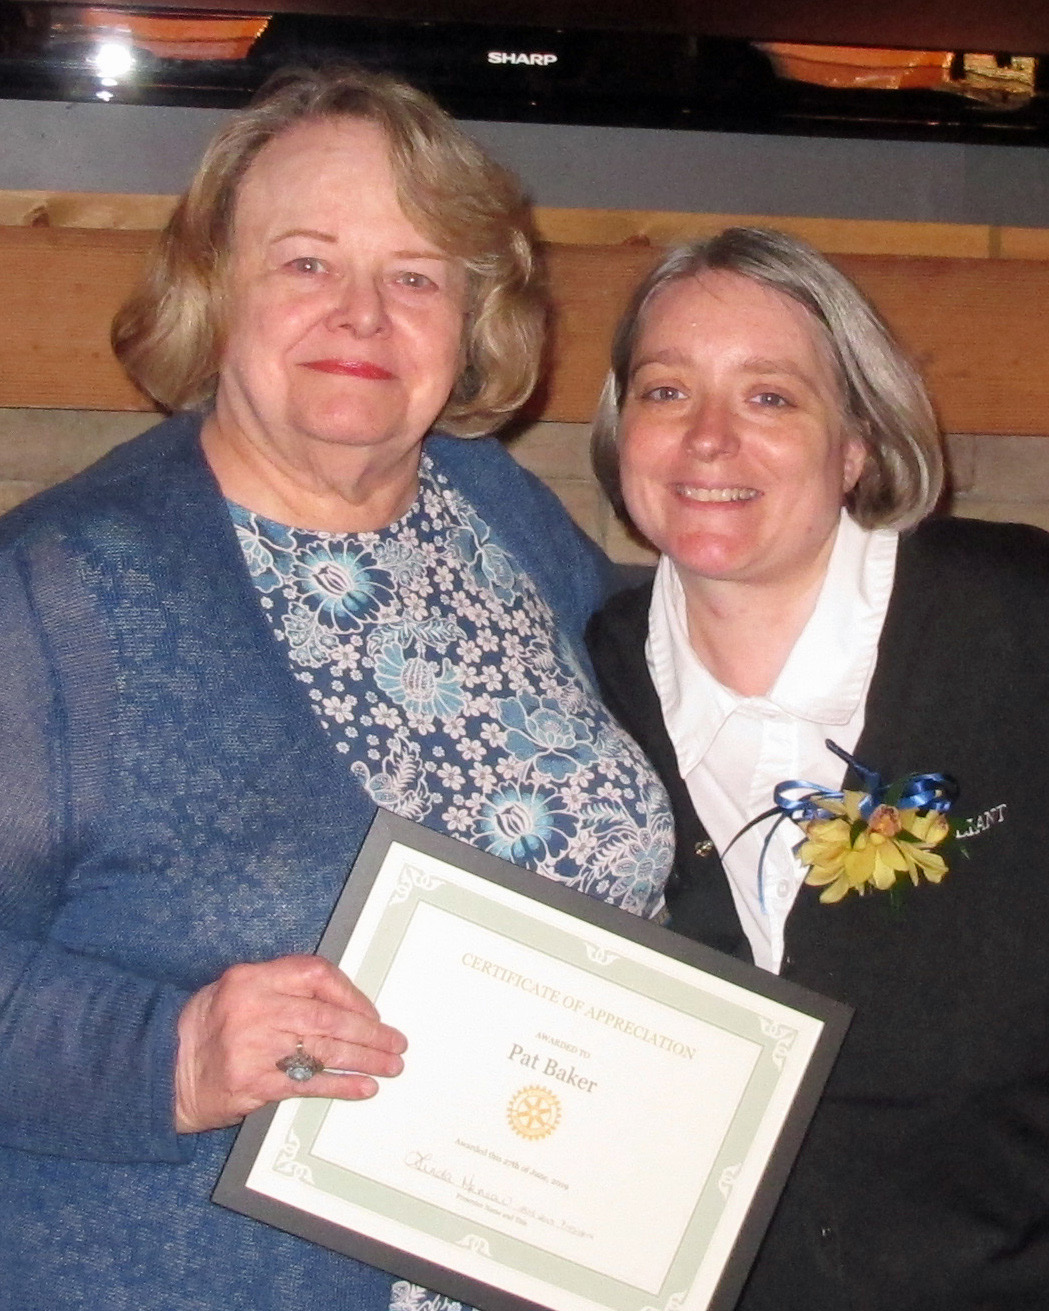 Pat Baker receiving recognition for all here hard work as a former Rotarian.. along side Linda Menear